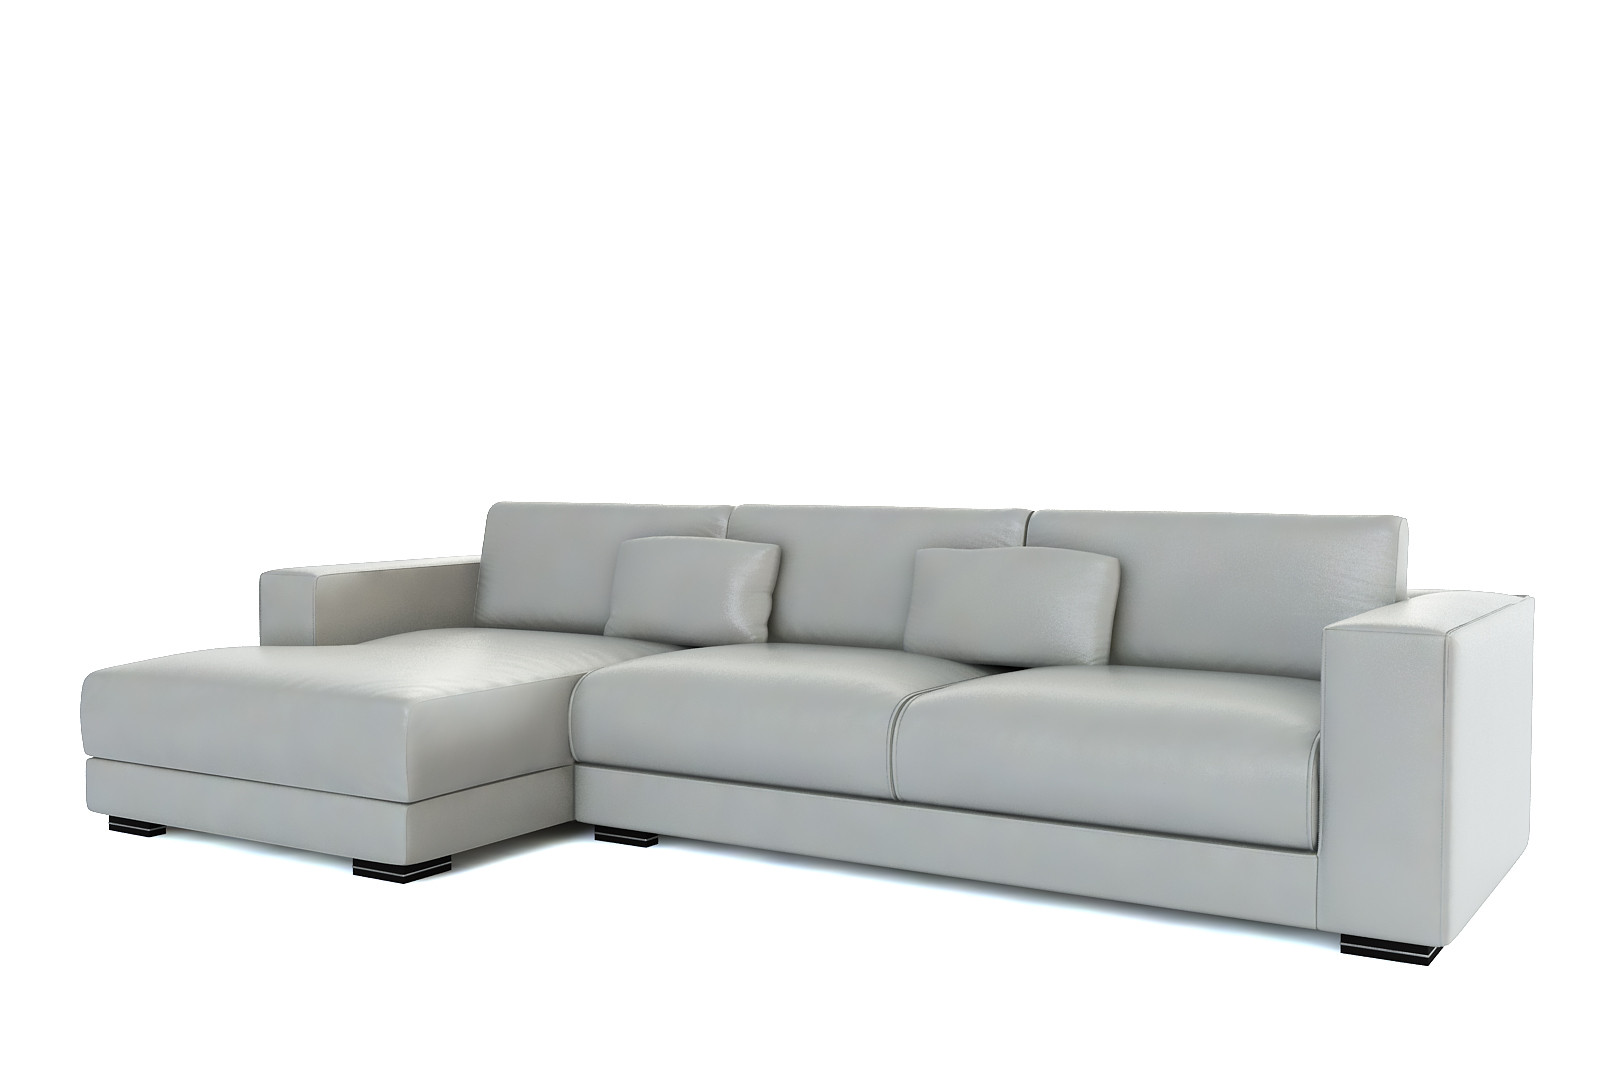 Best ideas about Light Gray Sofa . Save or Pin Sofa Charming light grey leather sofa Light Grey Now.